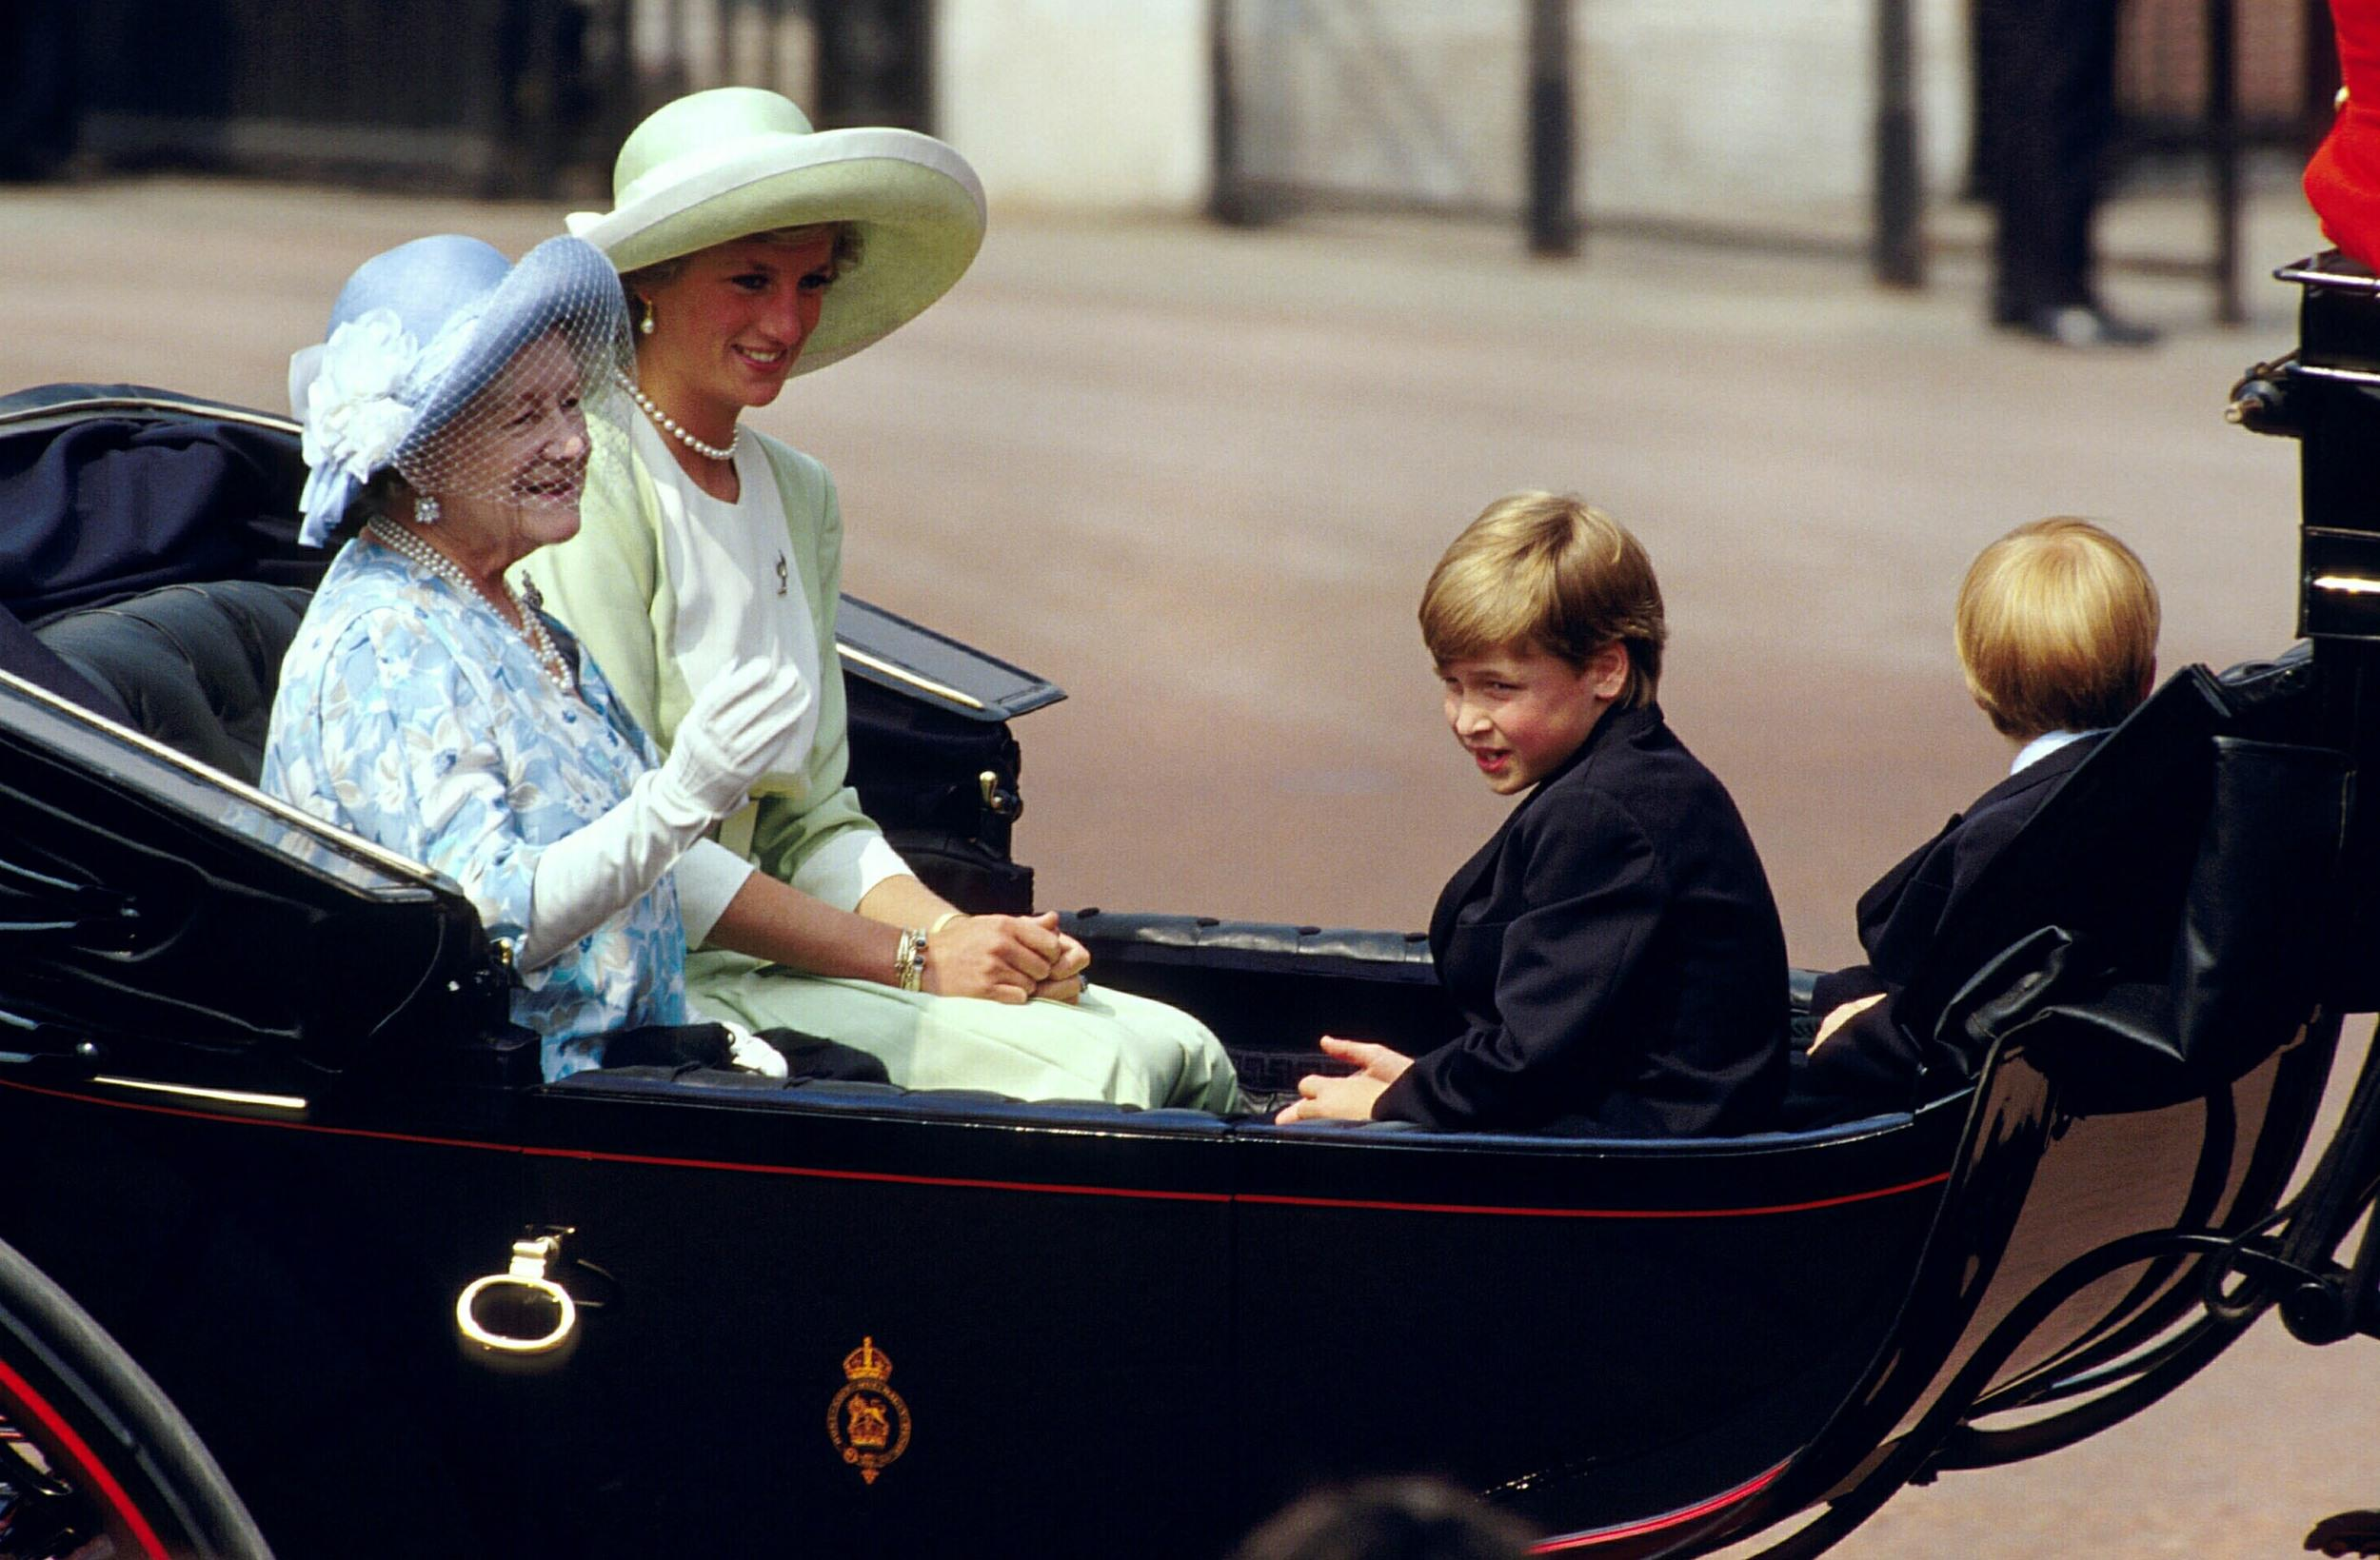 LONDON - JUNE 16:  (FILE PHOTO) (PRINCESS DIANA RETROSPECTIVE 22 OF 22)  The Queen Mother, the Princess of Wales and her children, Prince William and Prince Harry, ride back to Buckingham Palace during the ceremonies of the Trooping of the Colour June 16, 1990 in London, England. Princess Diana, 36-years-old, died with her companion Dodi Fayed, 41-years-old, in a car crash August 31, 1997 in Paris, France. Fayed was the son of an Egyptian billionaire.  (Photo by Georges De Keerle/Getty Images)